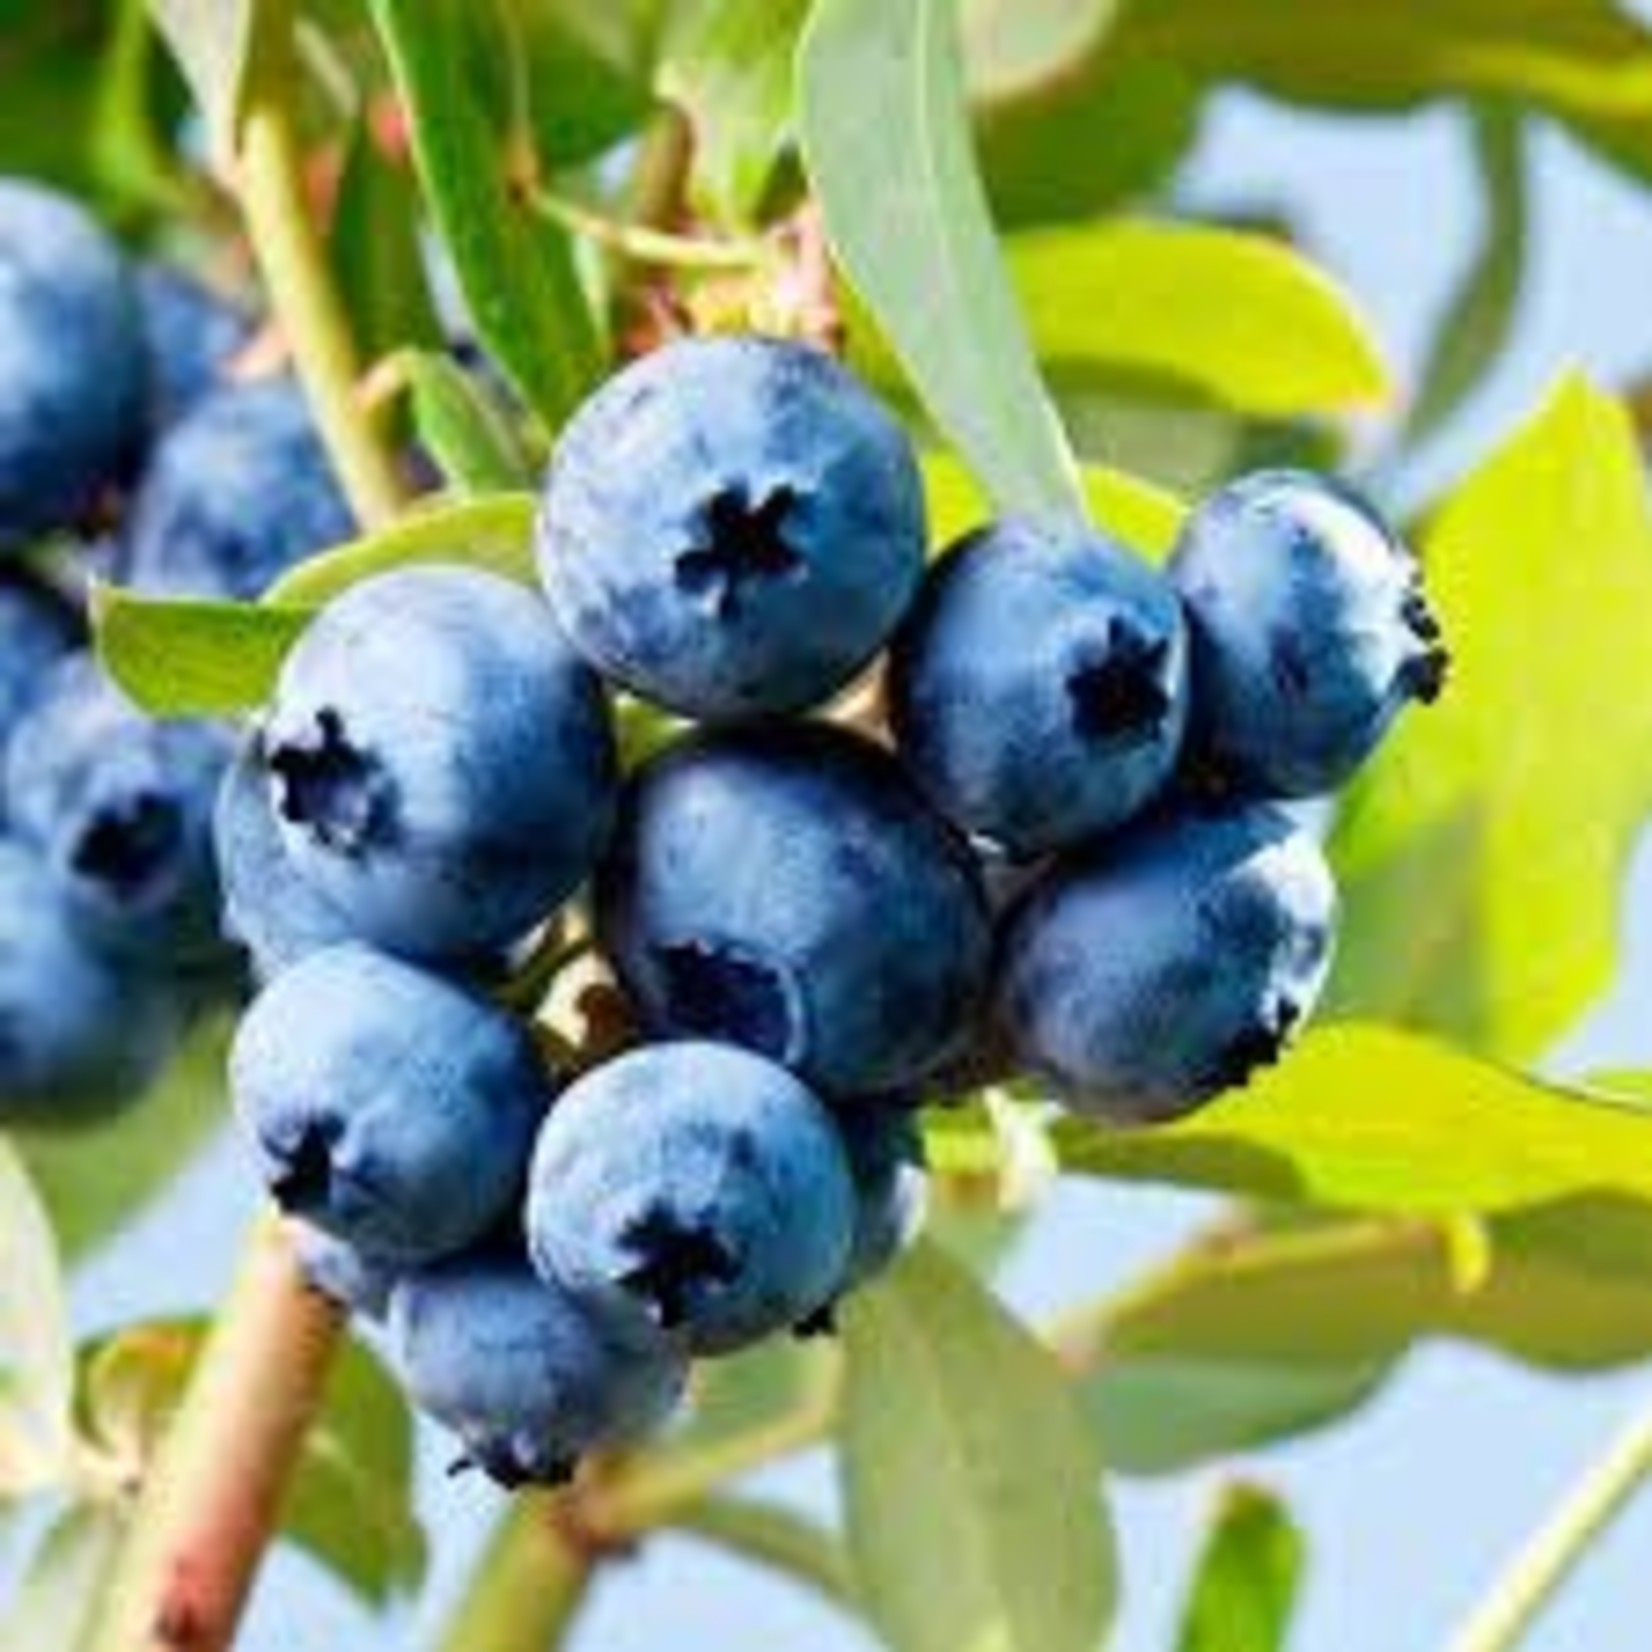 Blueberry - Vaccinium 'North Country'